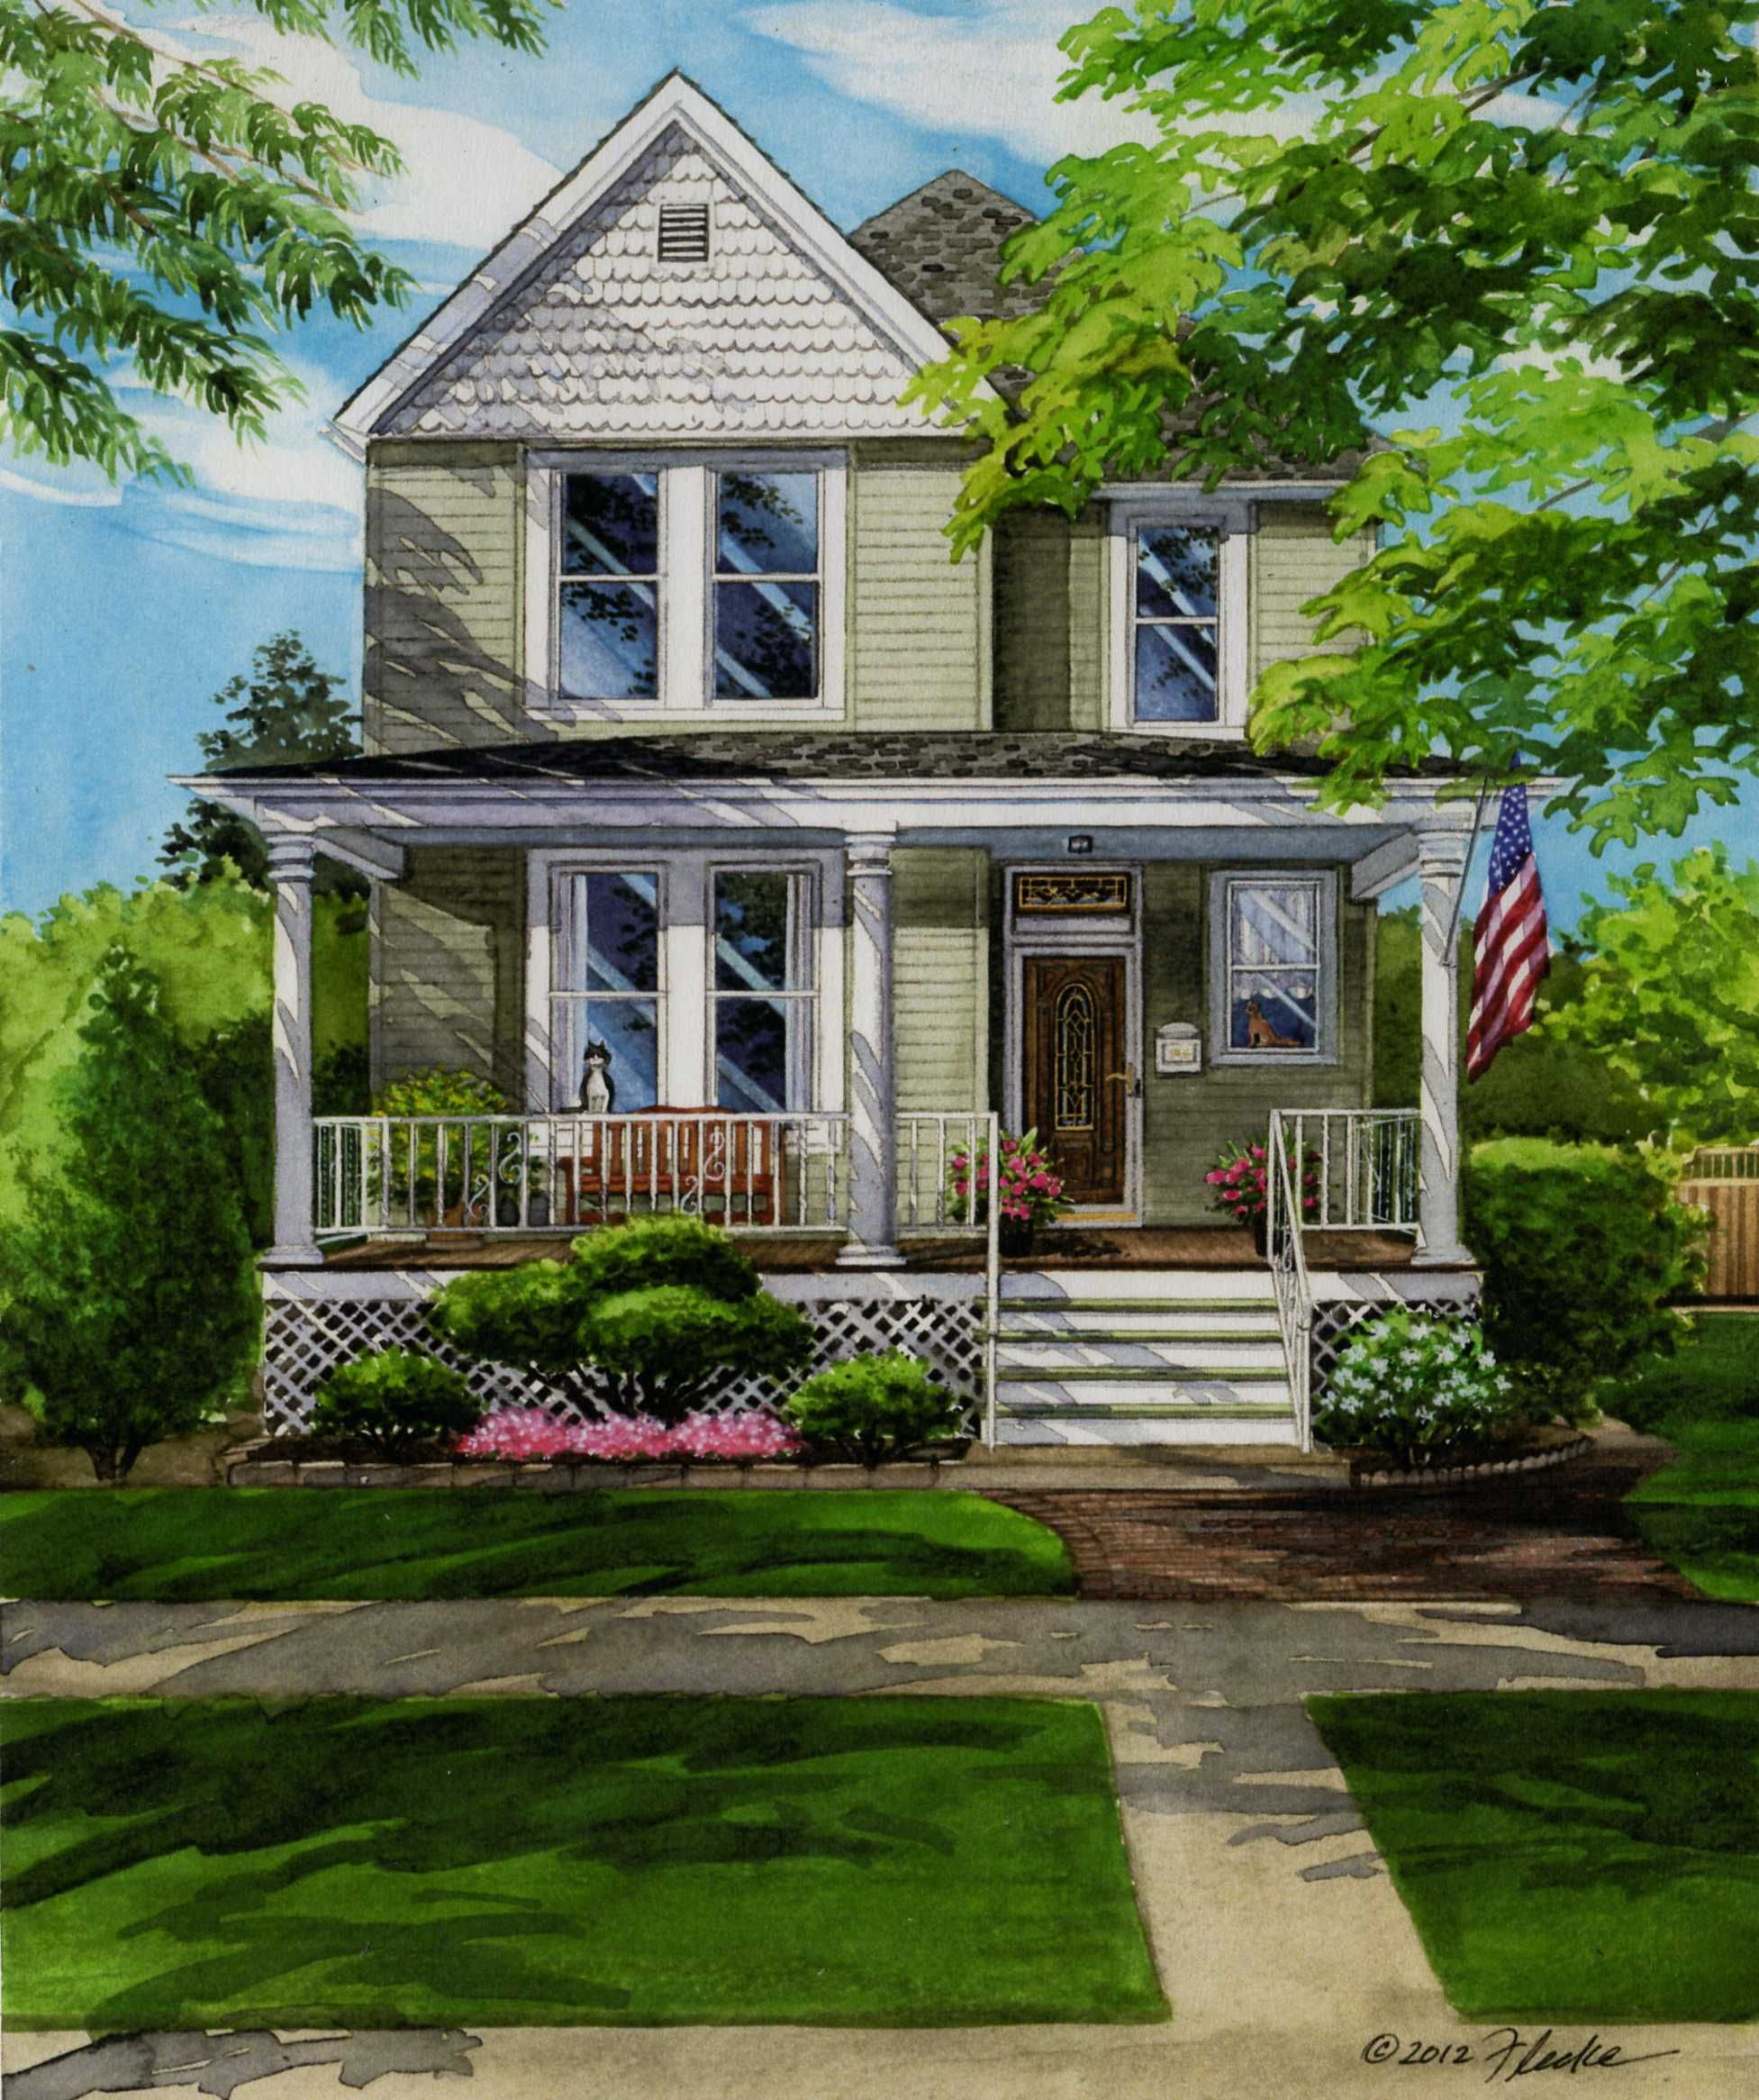 11 X 14 Watercolor Portrait Of Two-story Frame Home In